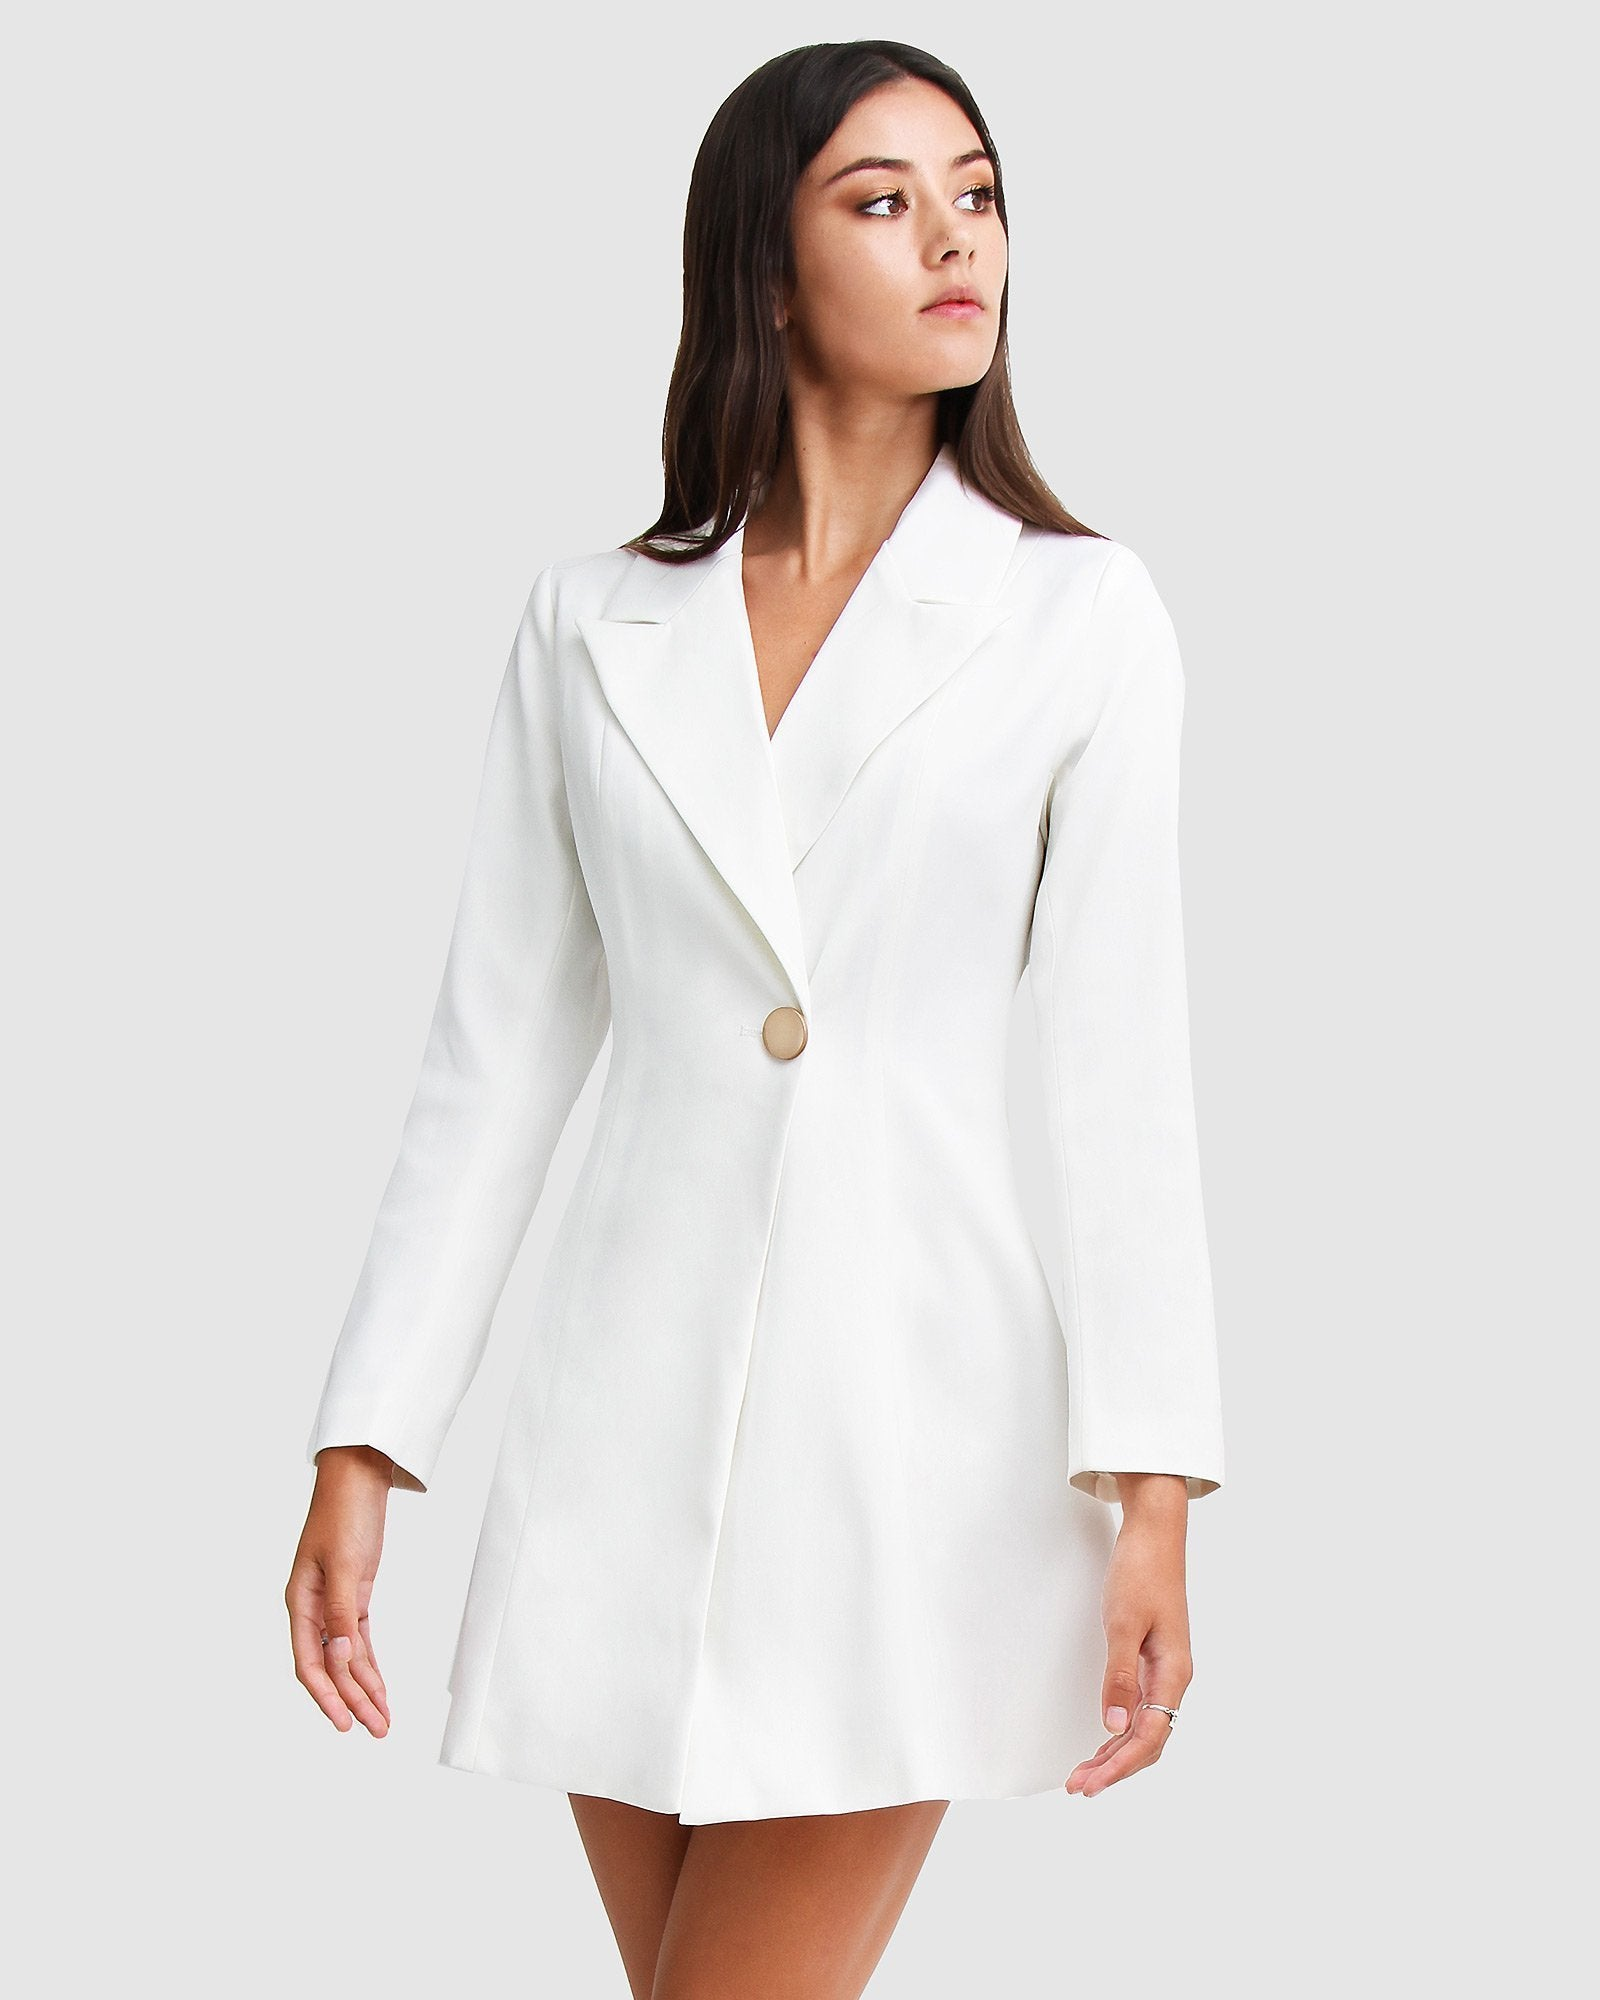 white-long-blazer-dress-buttons-front.jpg